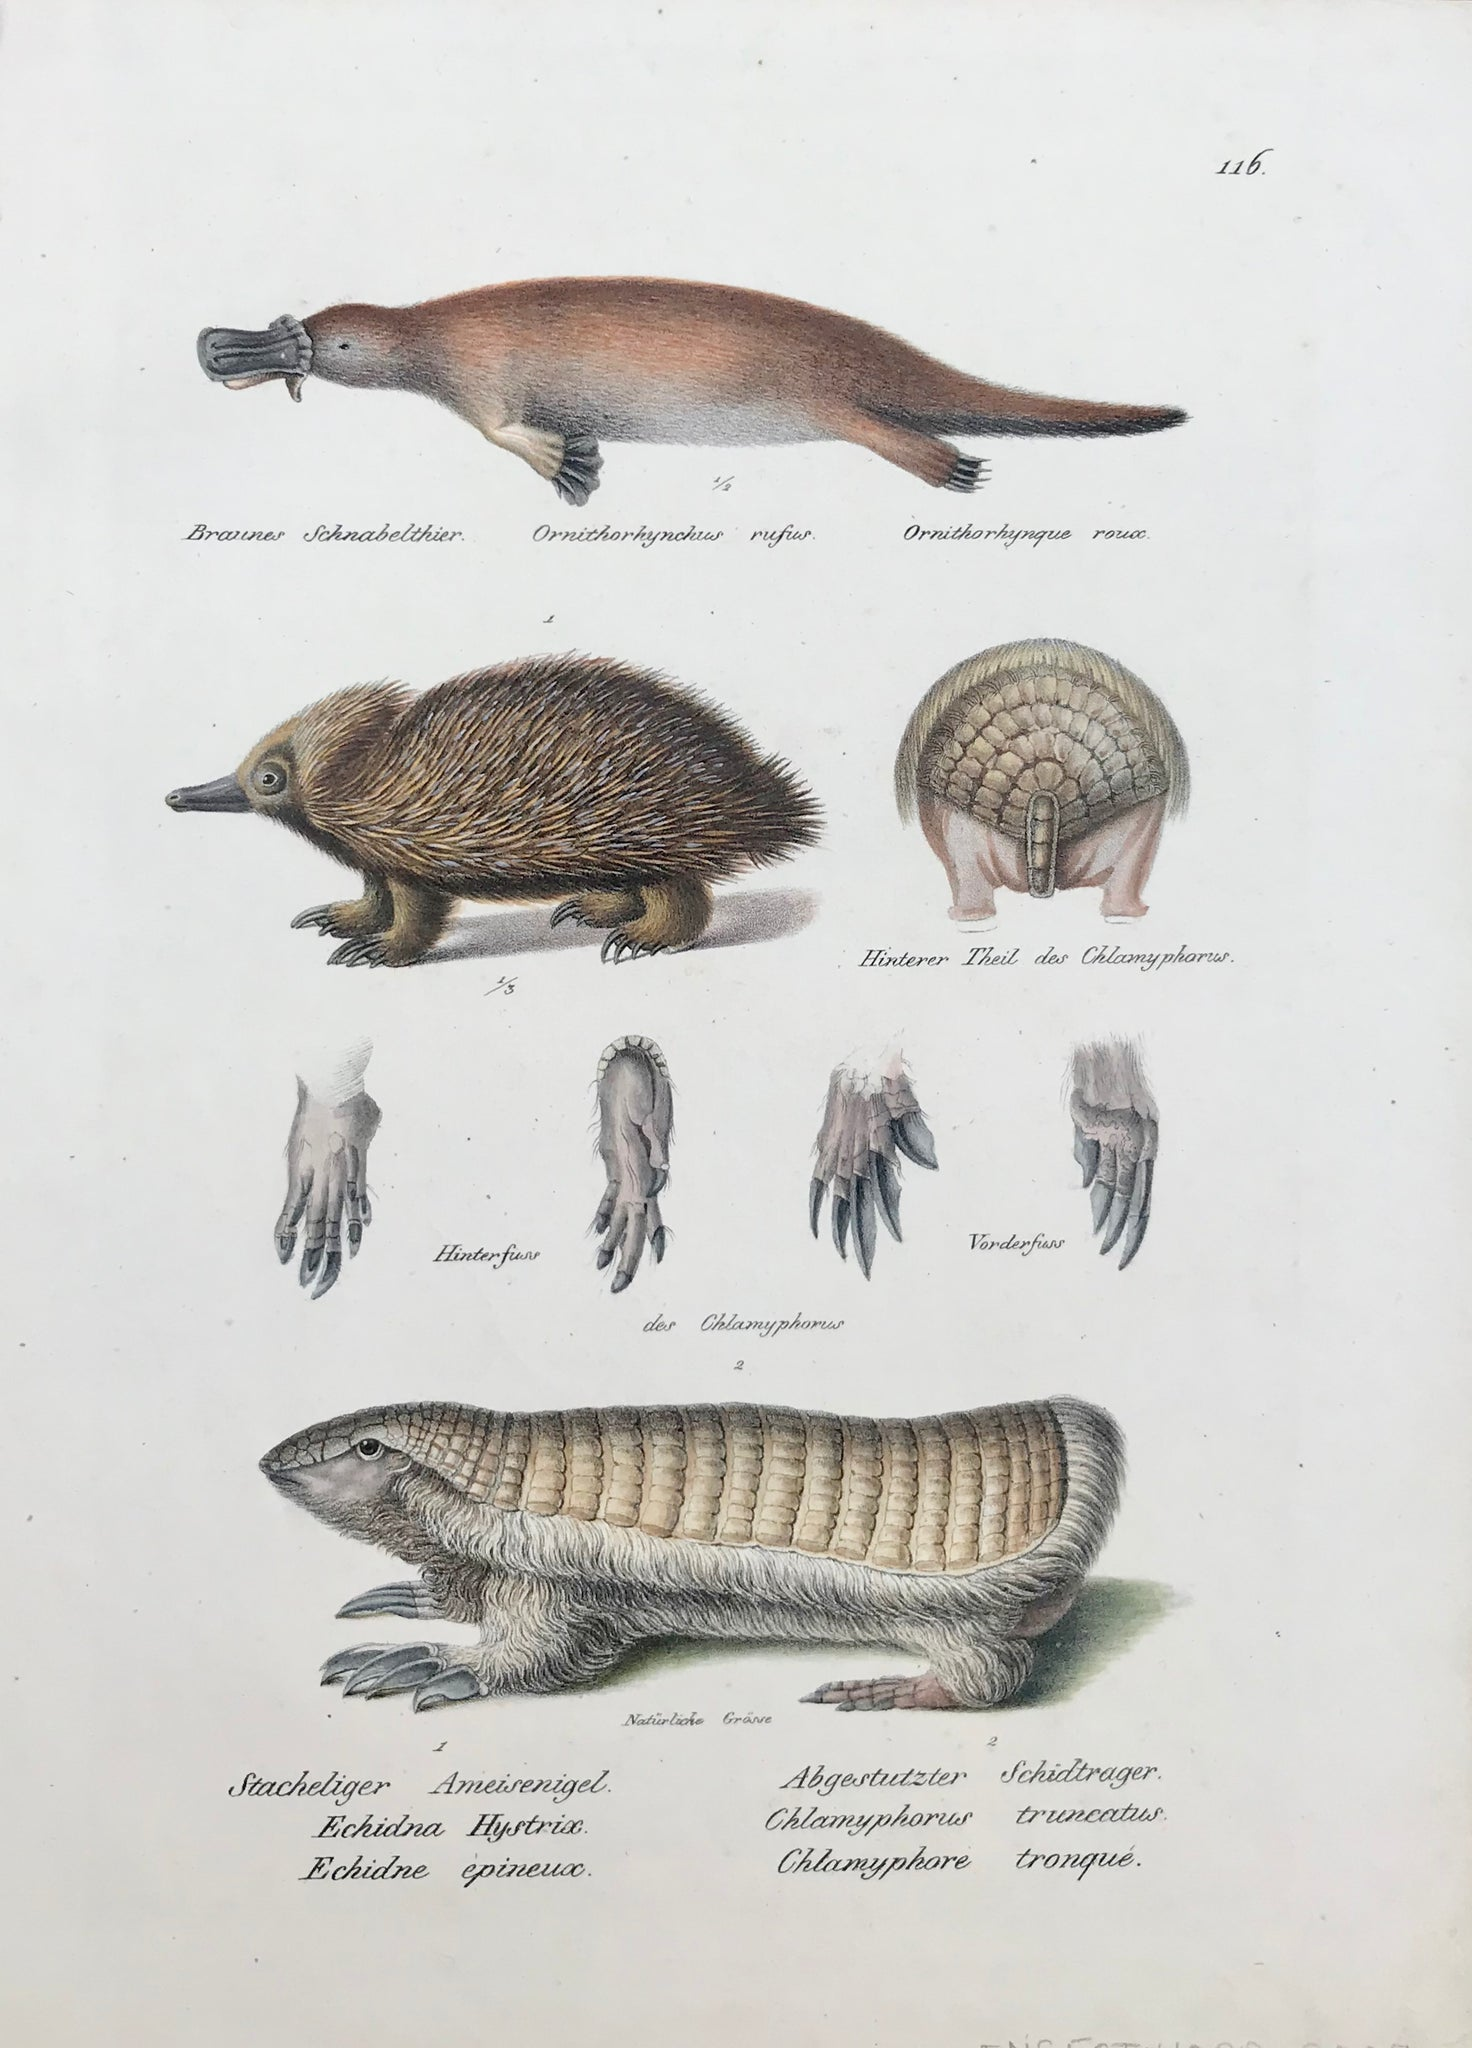 "Brauns Schnabelthier Ornithorhynchus rufus Ornithorhynque roux Stachliger Ameisenigel, Abgestutzter Schidtrager, Echidna Hystrix Chlamyphorus truncatus, Echicne epineux Chlamyphore tronque.  Very detailed lithograph ca 1850. Fine original hand coloring.  Page size: 32 x 23.5 cm ( 12.5 x 9.2 "")"